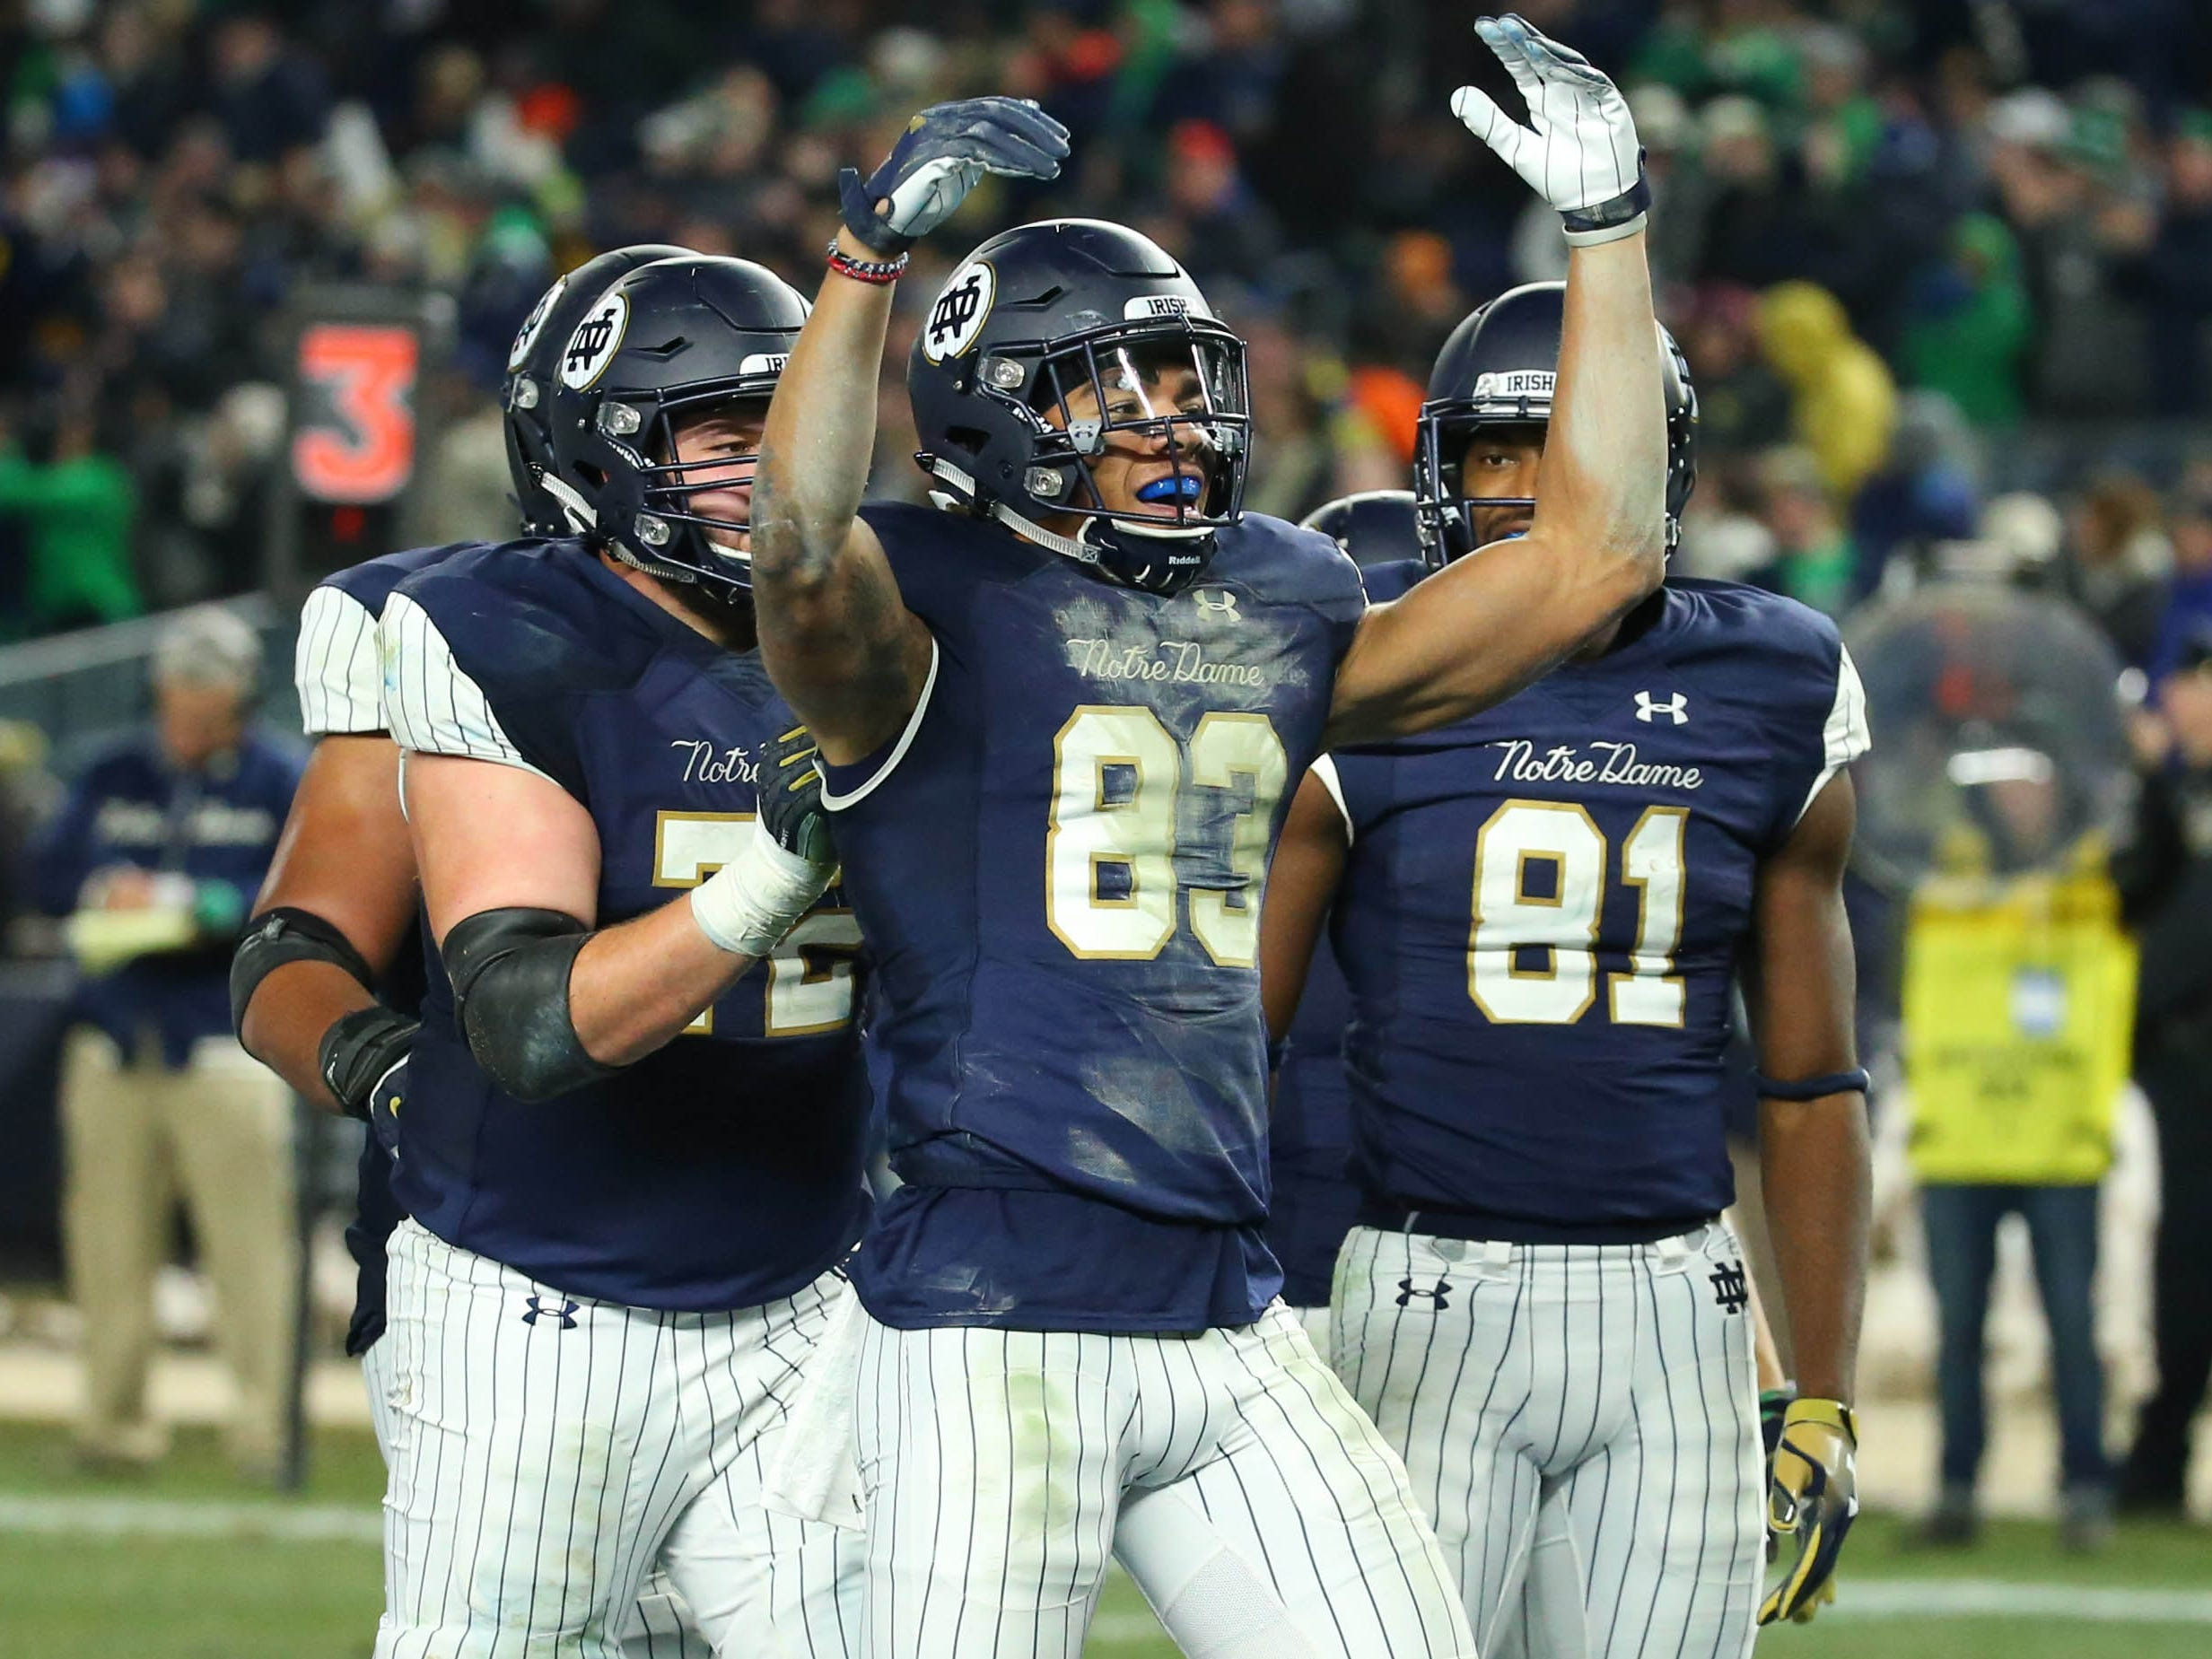 3. Notre Dame (11-0) | Last game: Defeated Syracuse, 36-3 | Previous ranking: 3